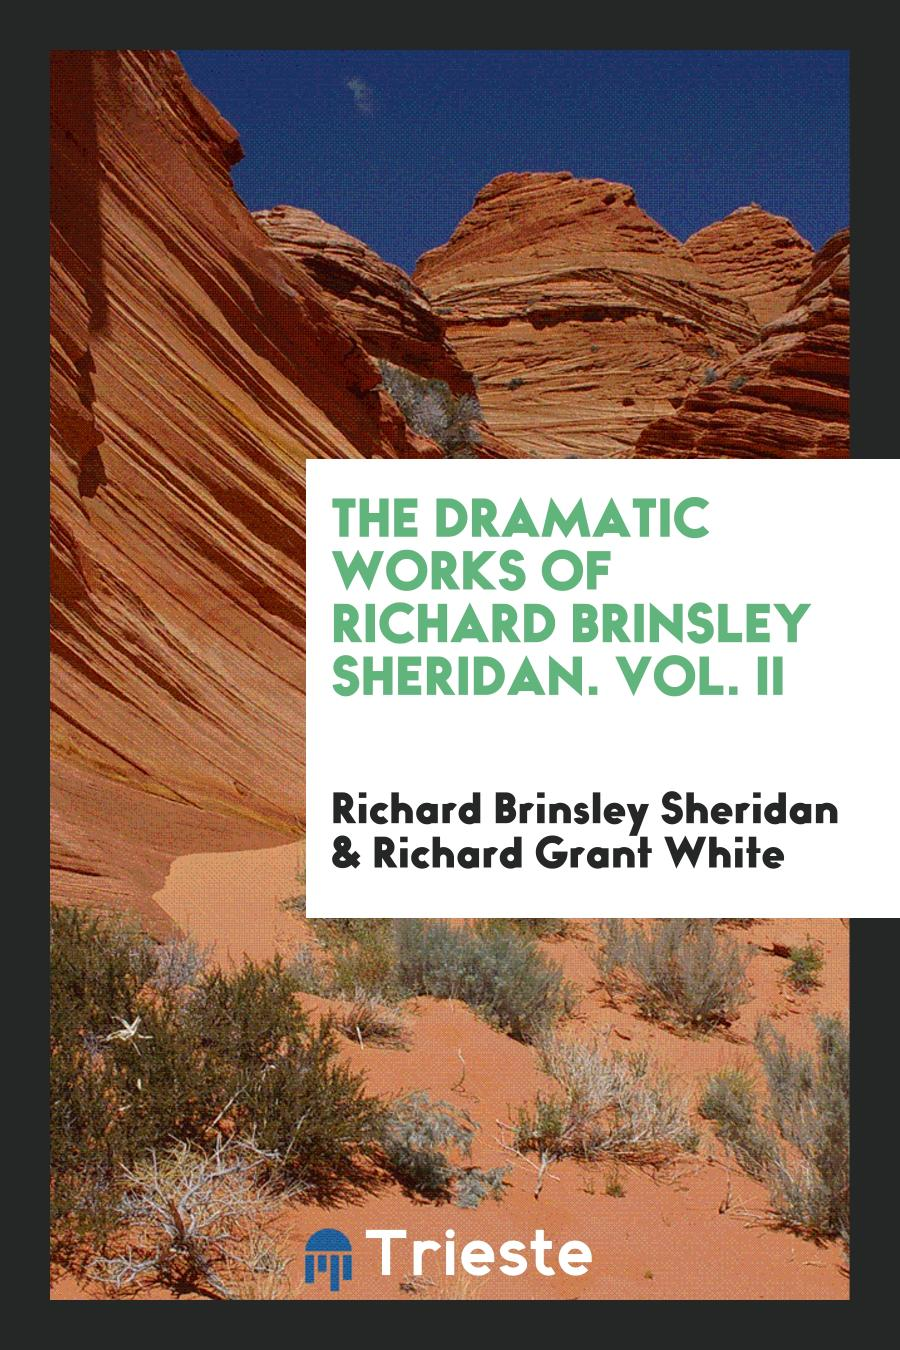 The Dramatic Works of Richard Brinsley Sheridan. Vol. II